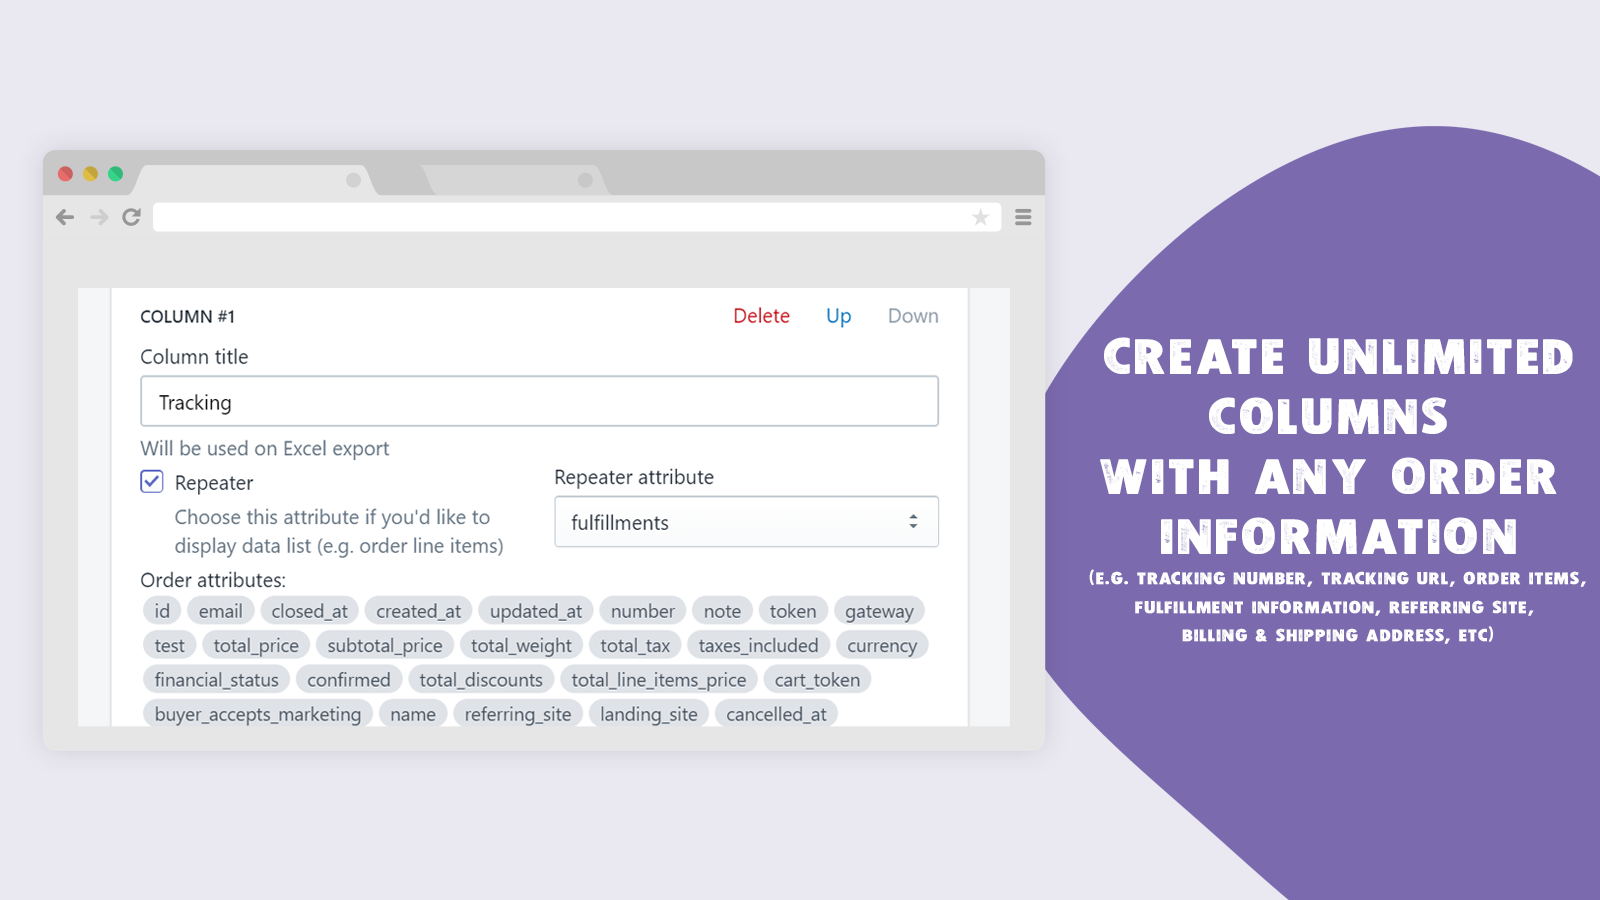 Create unlimited columns with any order information